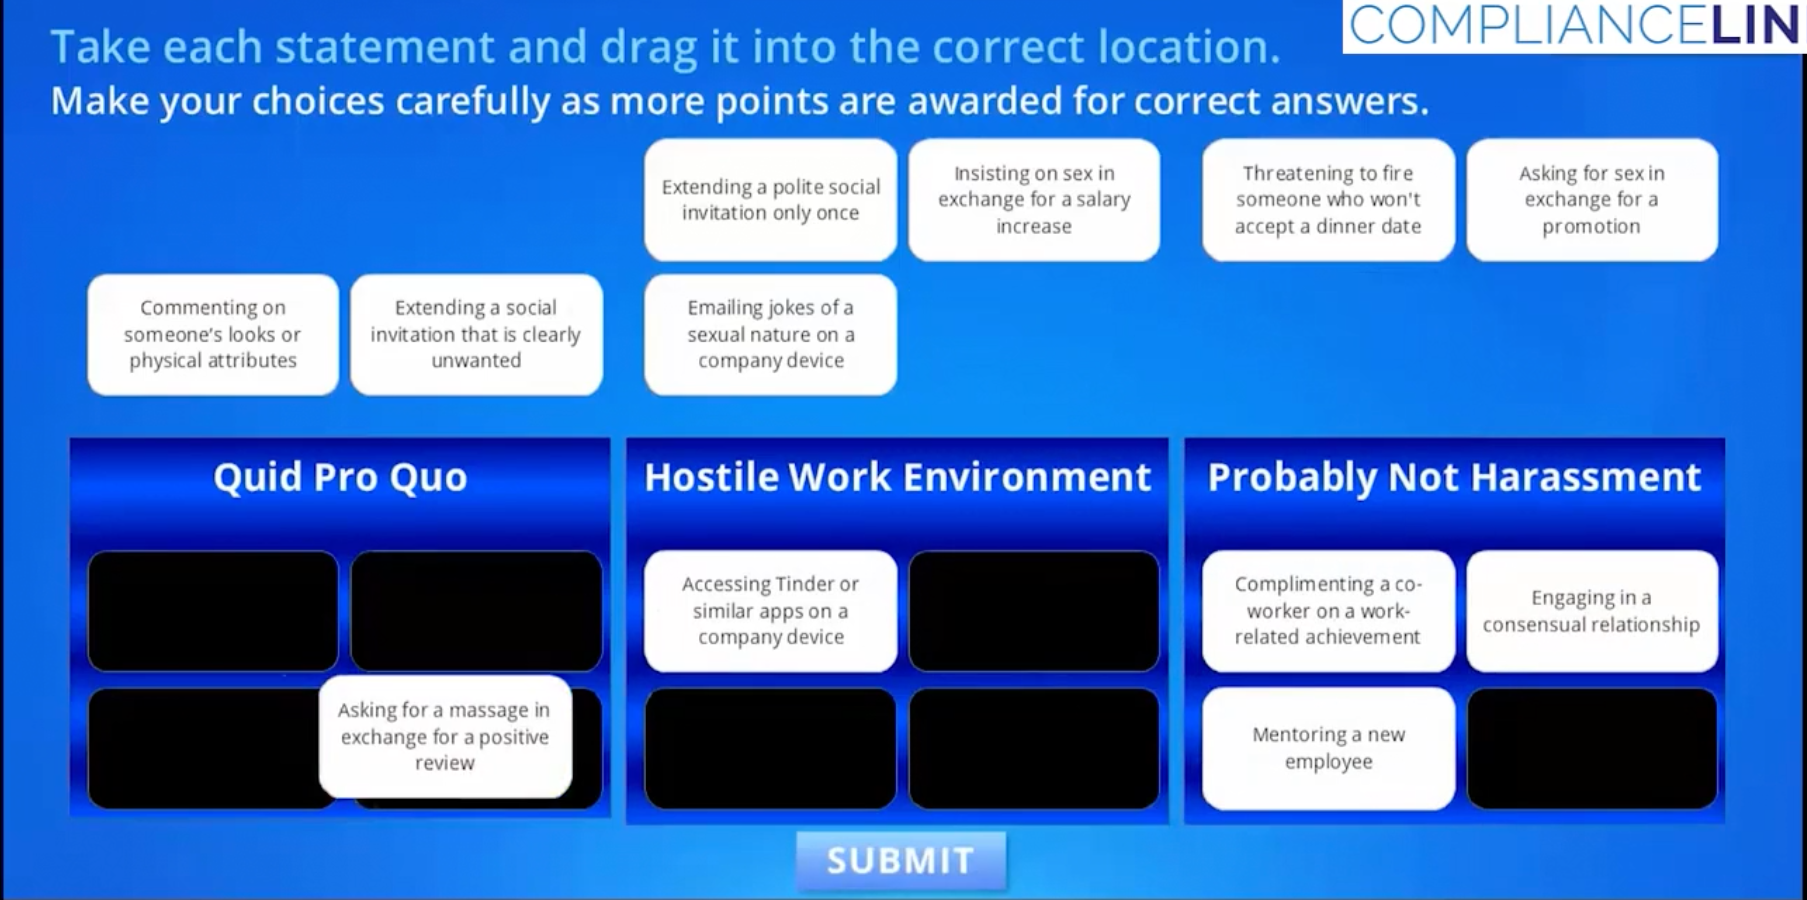 In the middle of the videos, the viewer's knowledge will be reinforced by participating in small little games such as this one in which the user much match the scenario with the correct type of misconduct.